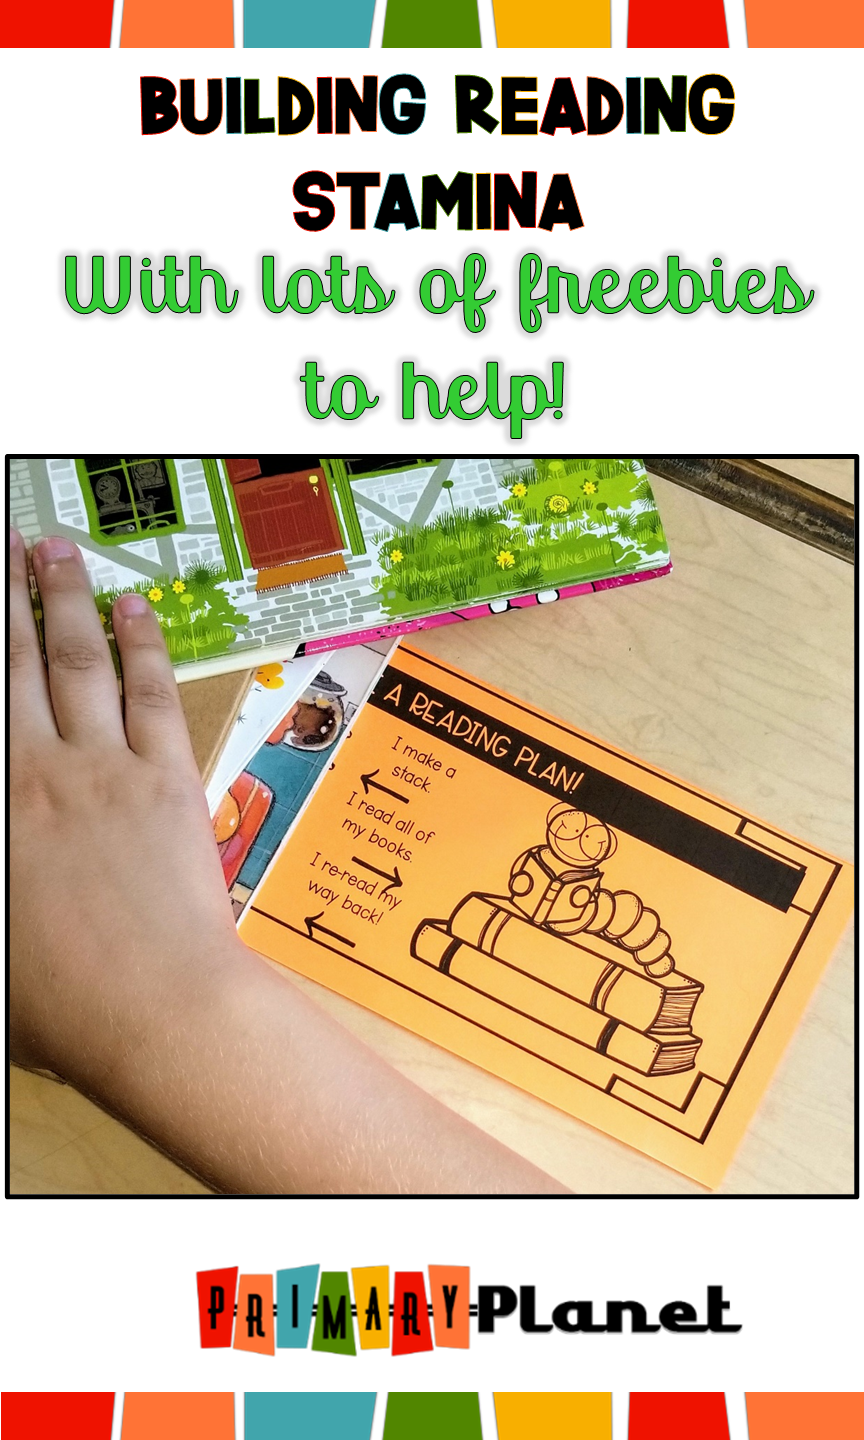 Check out my Building Reading Stamina blog post!  You can grab your freebies to help make Building Reading Stamina a little easier with your elementary students! The reading stamina freebies include Reading Stamina Poster, Stamina Graph, Stamina Reading Goal Checklist Bookmark, Stamina Reading Goal Checklist Anchor Chart, and Notebook page, Stamina Reading Conference Labels and a Distance Learning Digital Stamina Reading Goal Checklist Notebook page!